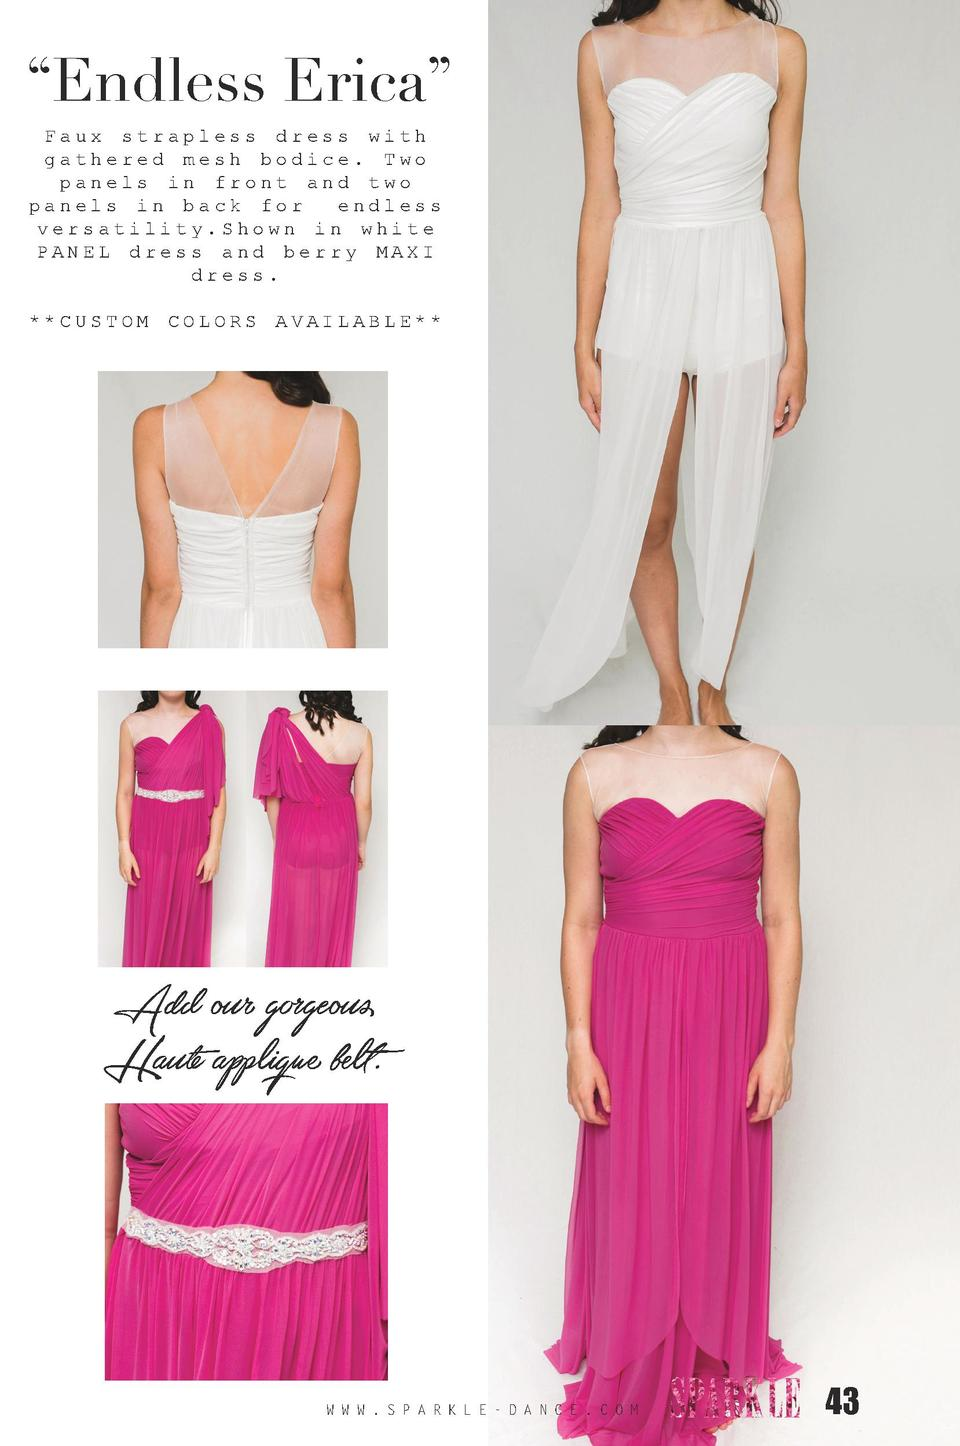 Endless Erica    Faux strapless dress with gathered mesh bodice. Two panels in front and two panels in back for endless...